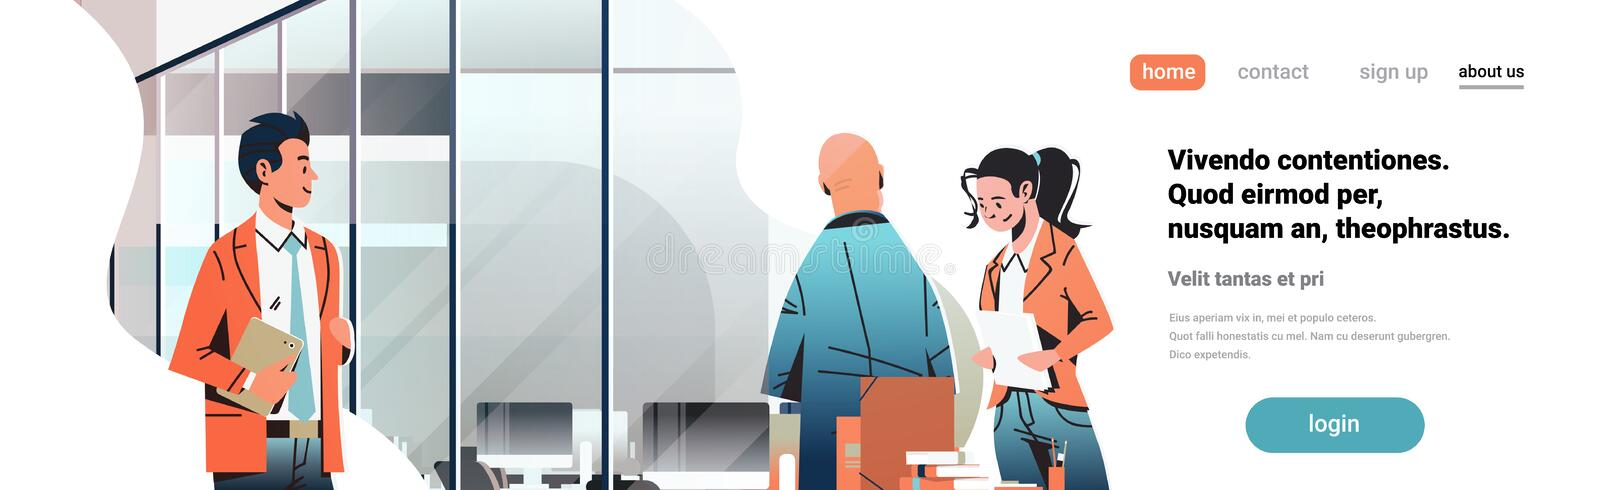 Business people communicating concept modern coworking office interior creative workplace male female cartoon character. Portrait horizontal banner copy space vector illustration